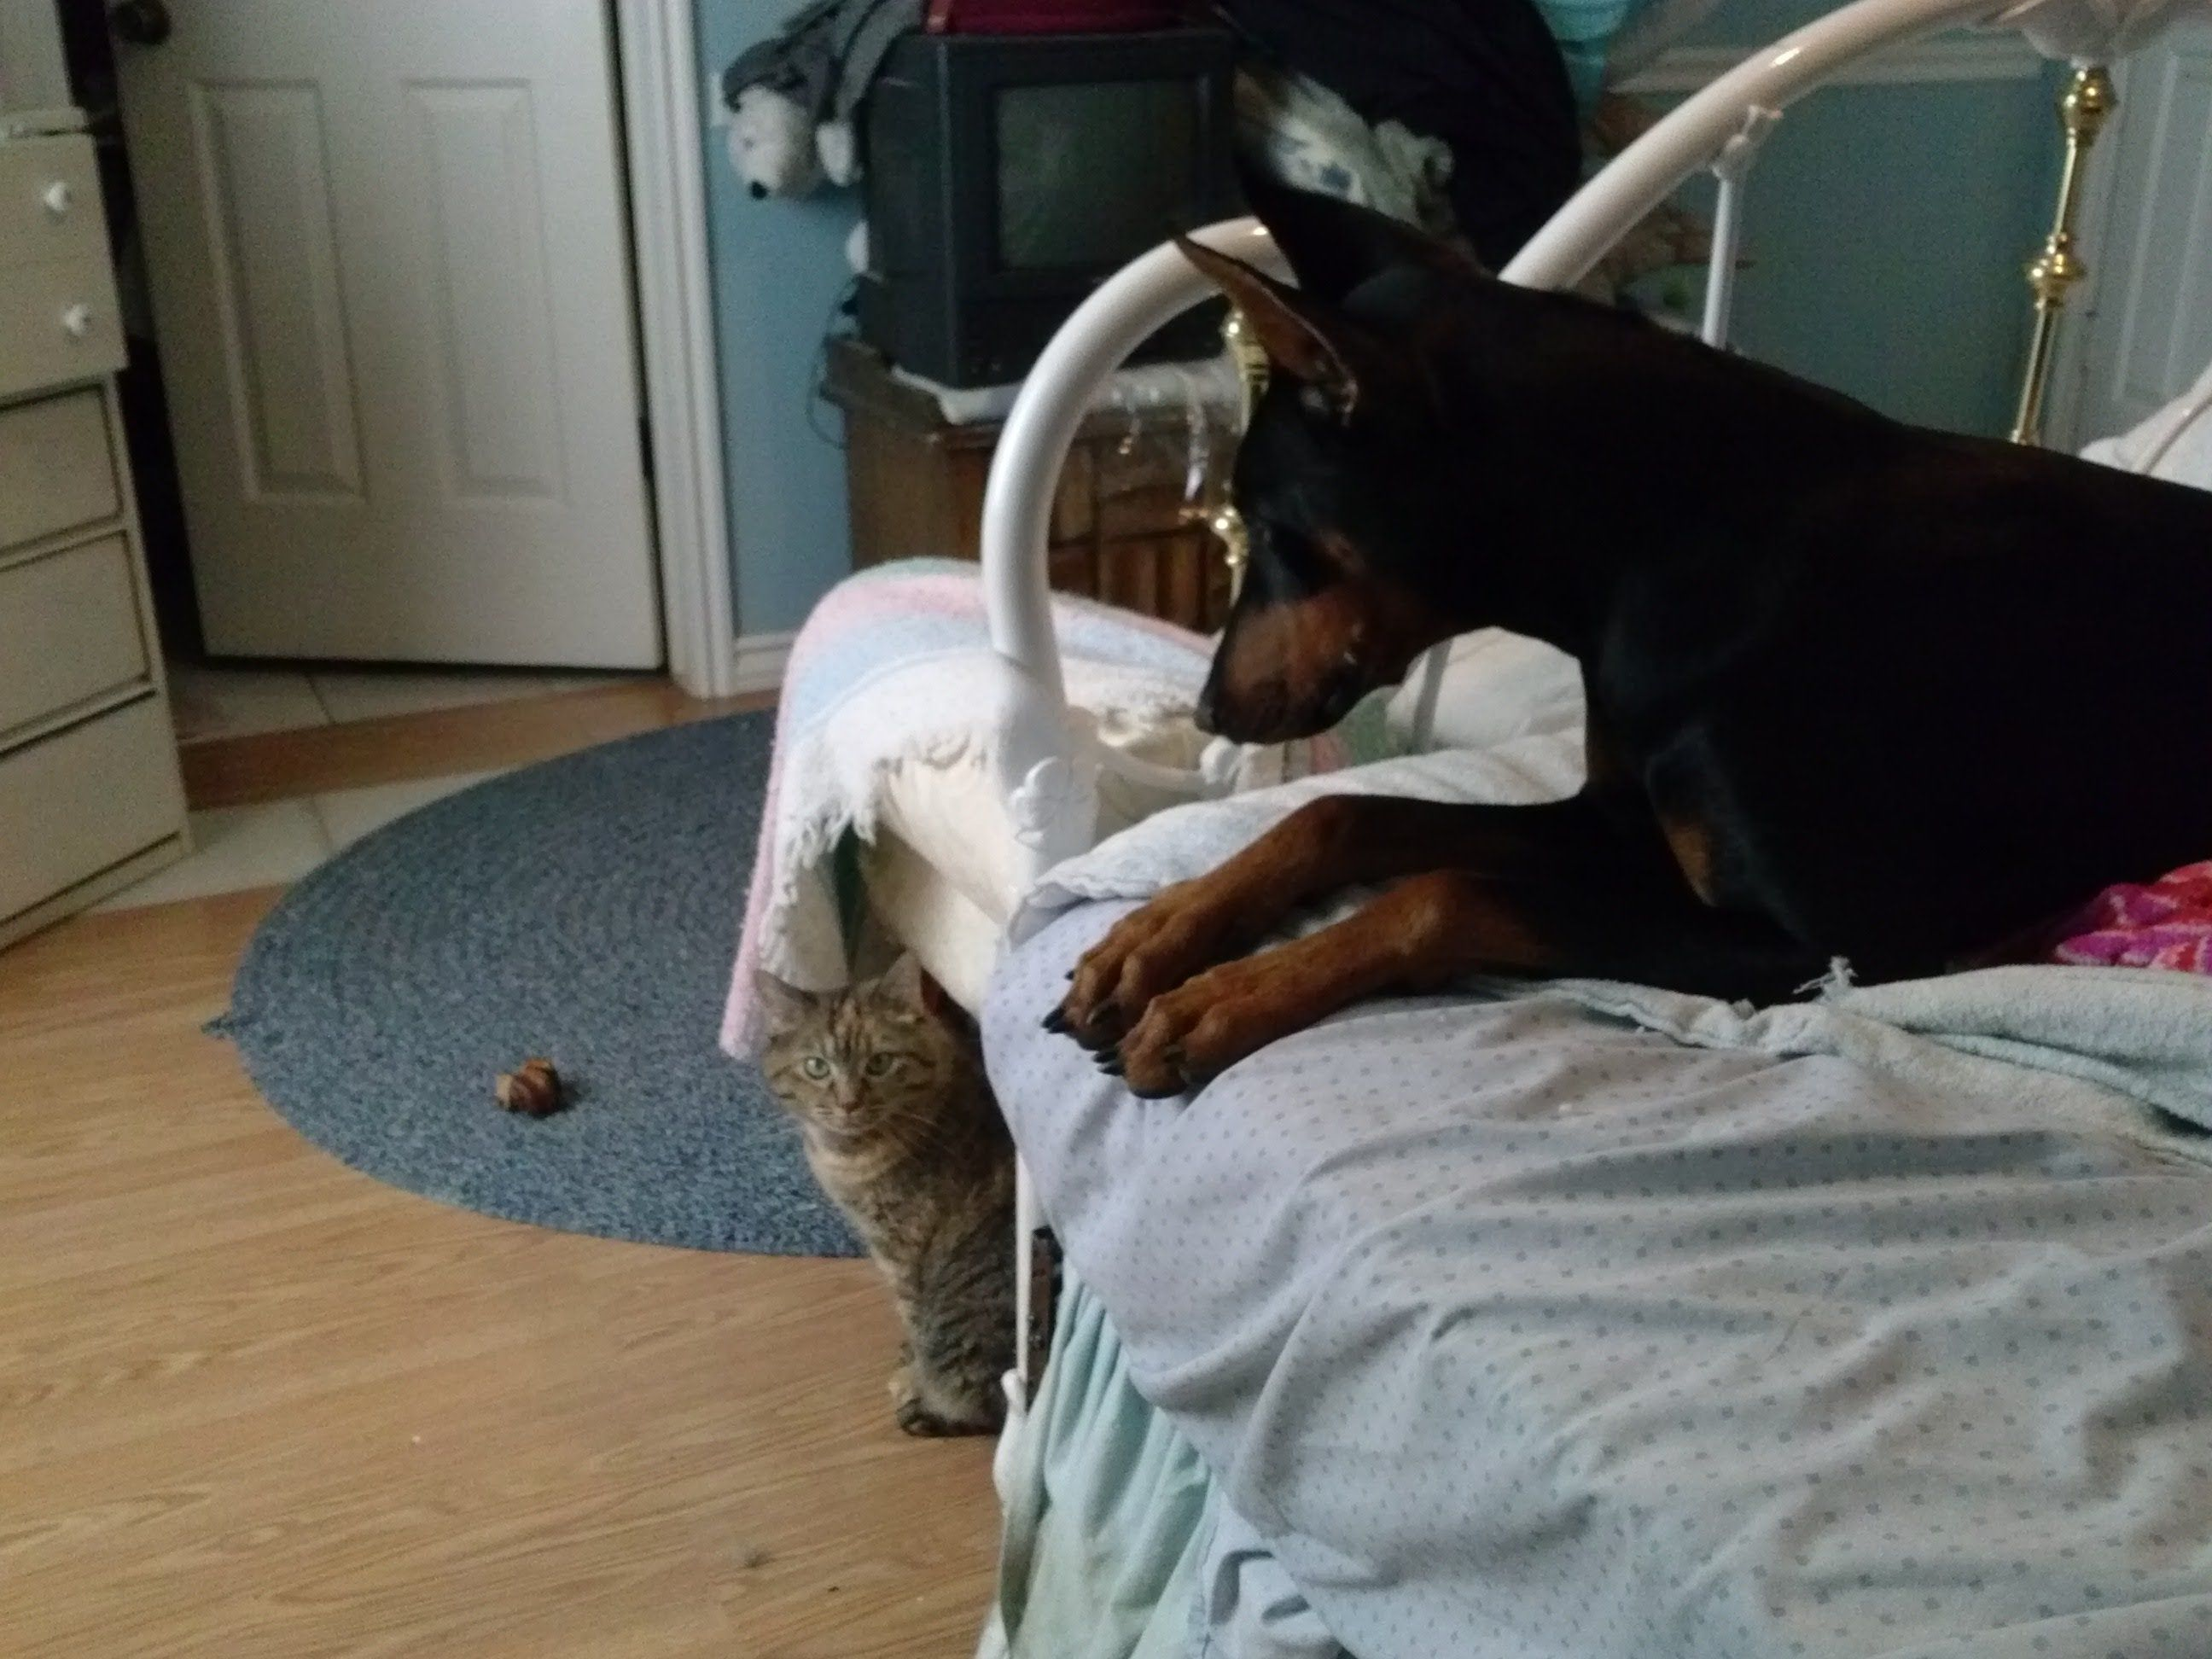 Doberman Vs Cat Scavengers The Animal Rescue Site Blog Doberman Kittens Funny Best Friends Pets